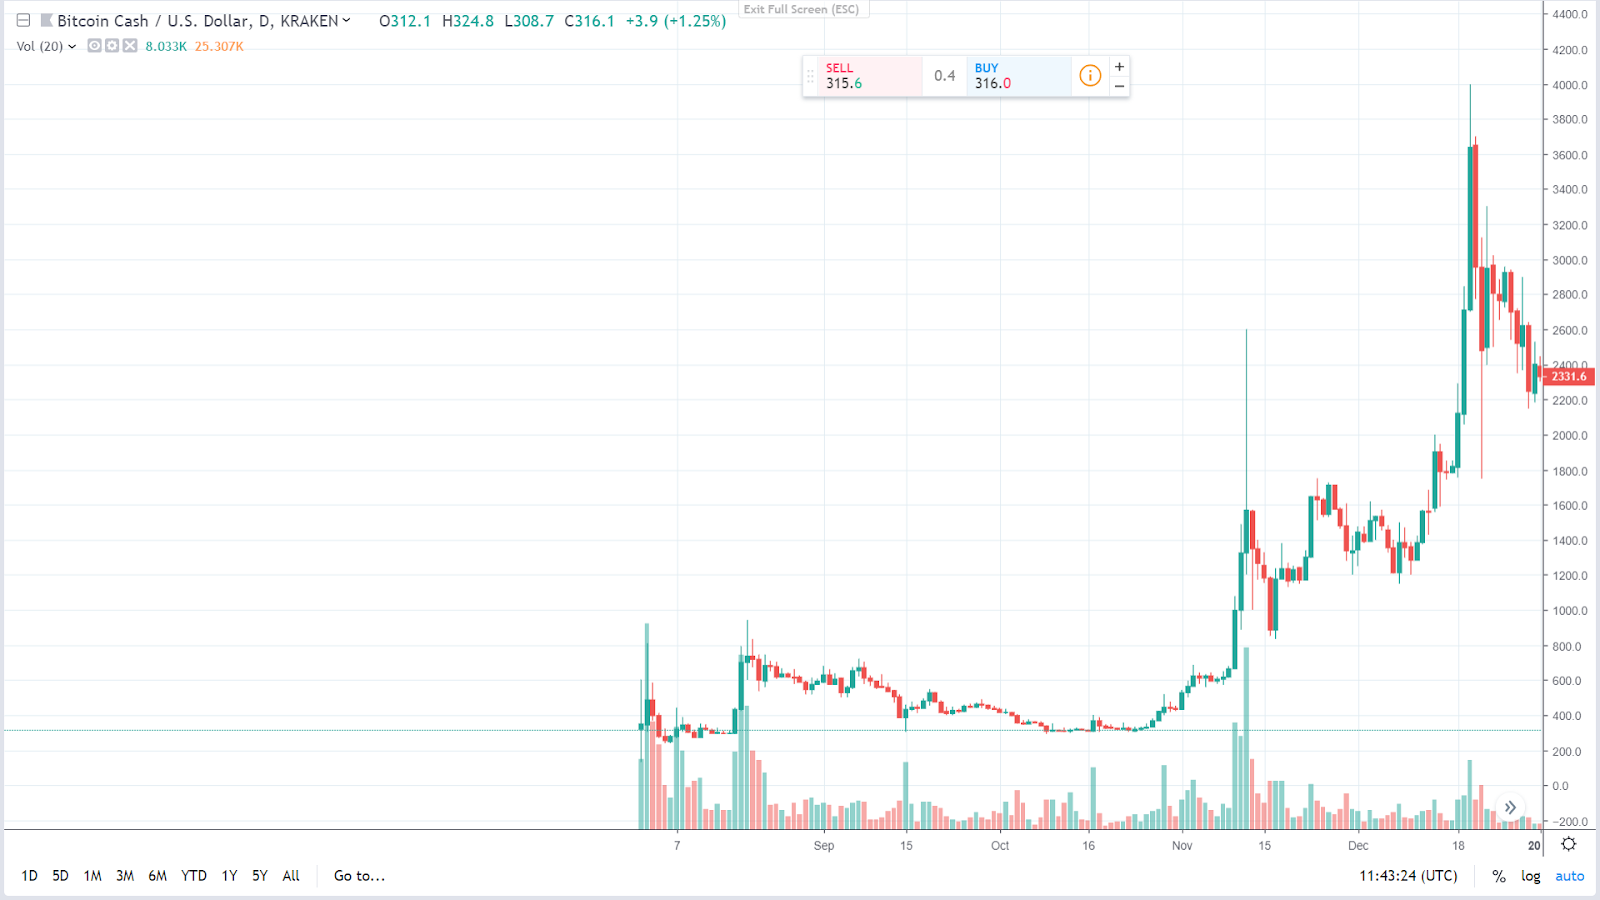 BCH Price Prediction 1